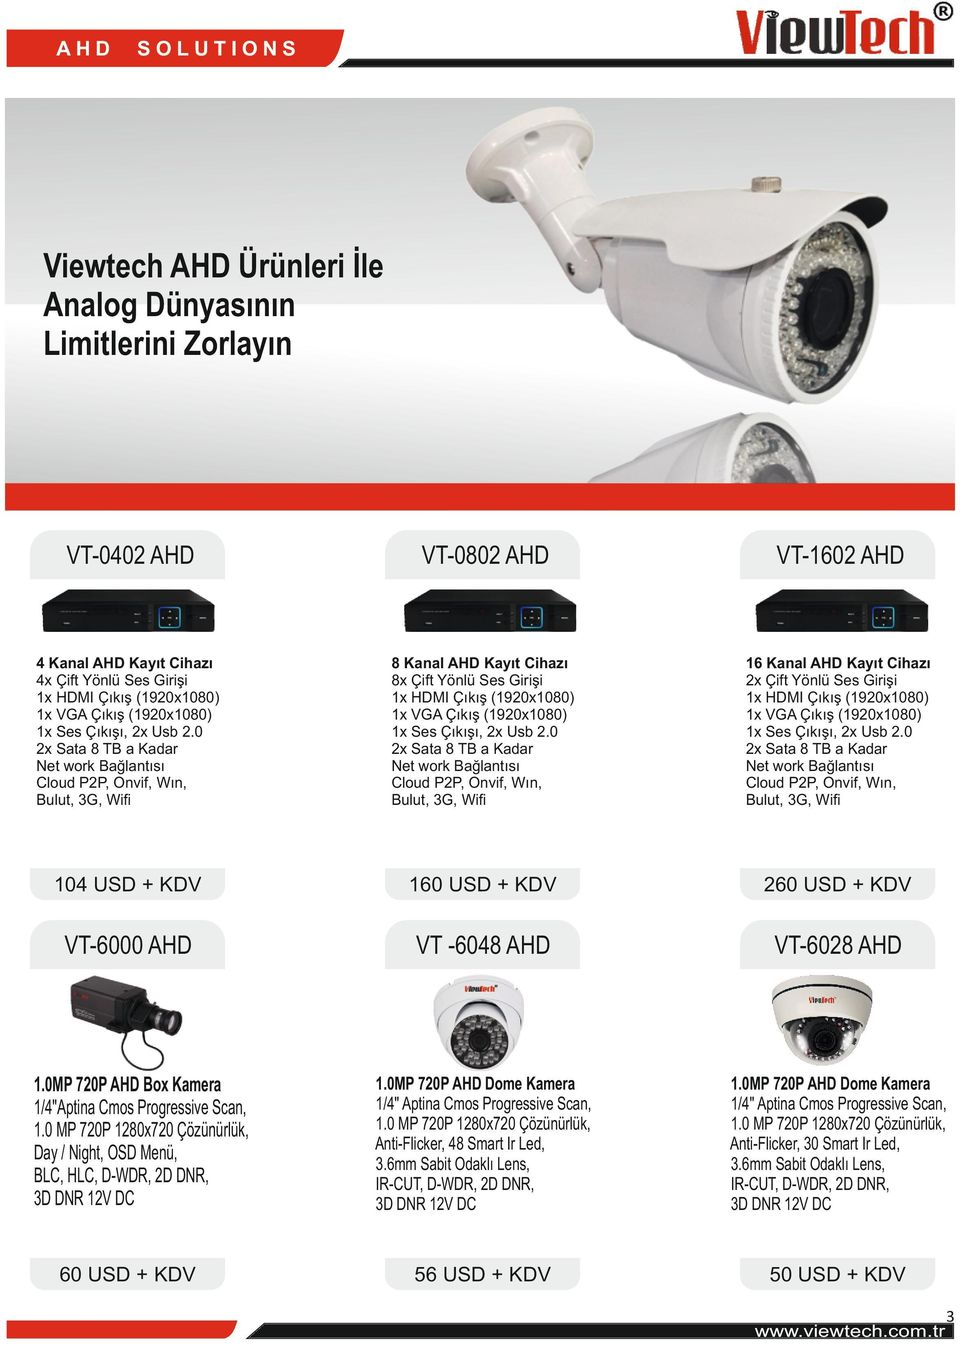 USD + KDV 260 USD + KDV VT-6000 AHD VT -6048 AHD VT-6028 AHD 1.0MP 720P AHD Dome Kamera Anti-Flicker, 48 Smart Ir Led, 3D DNR 12V DC 1.